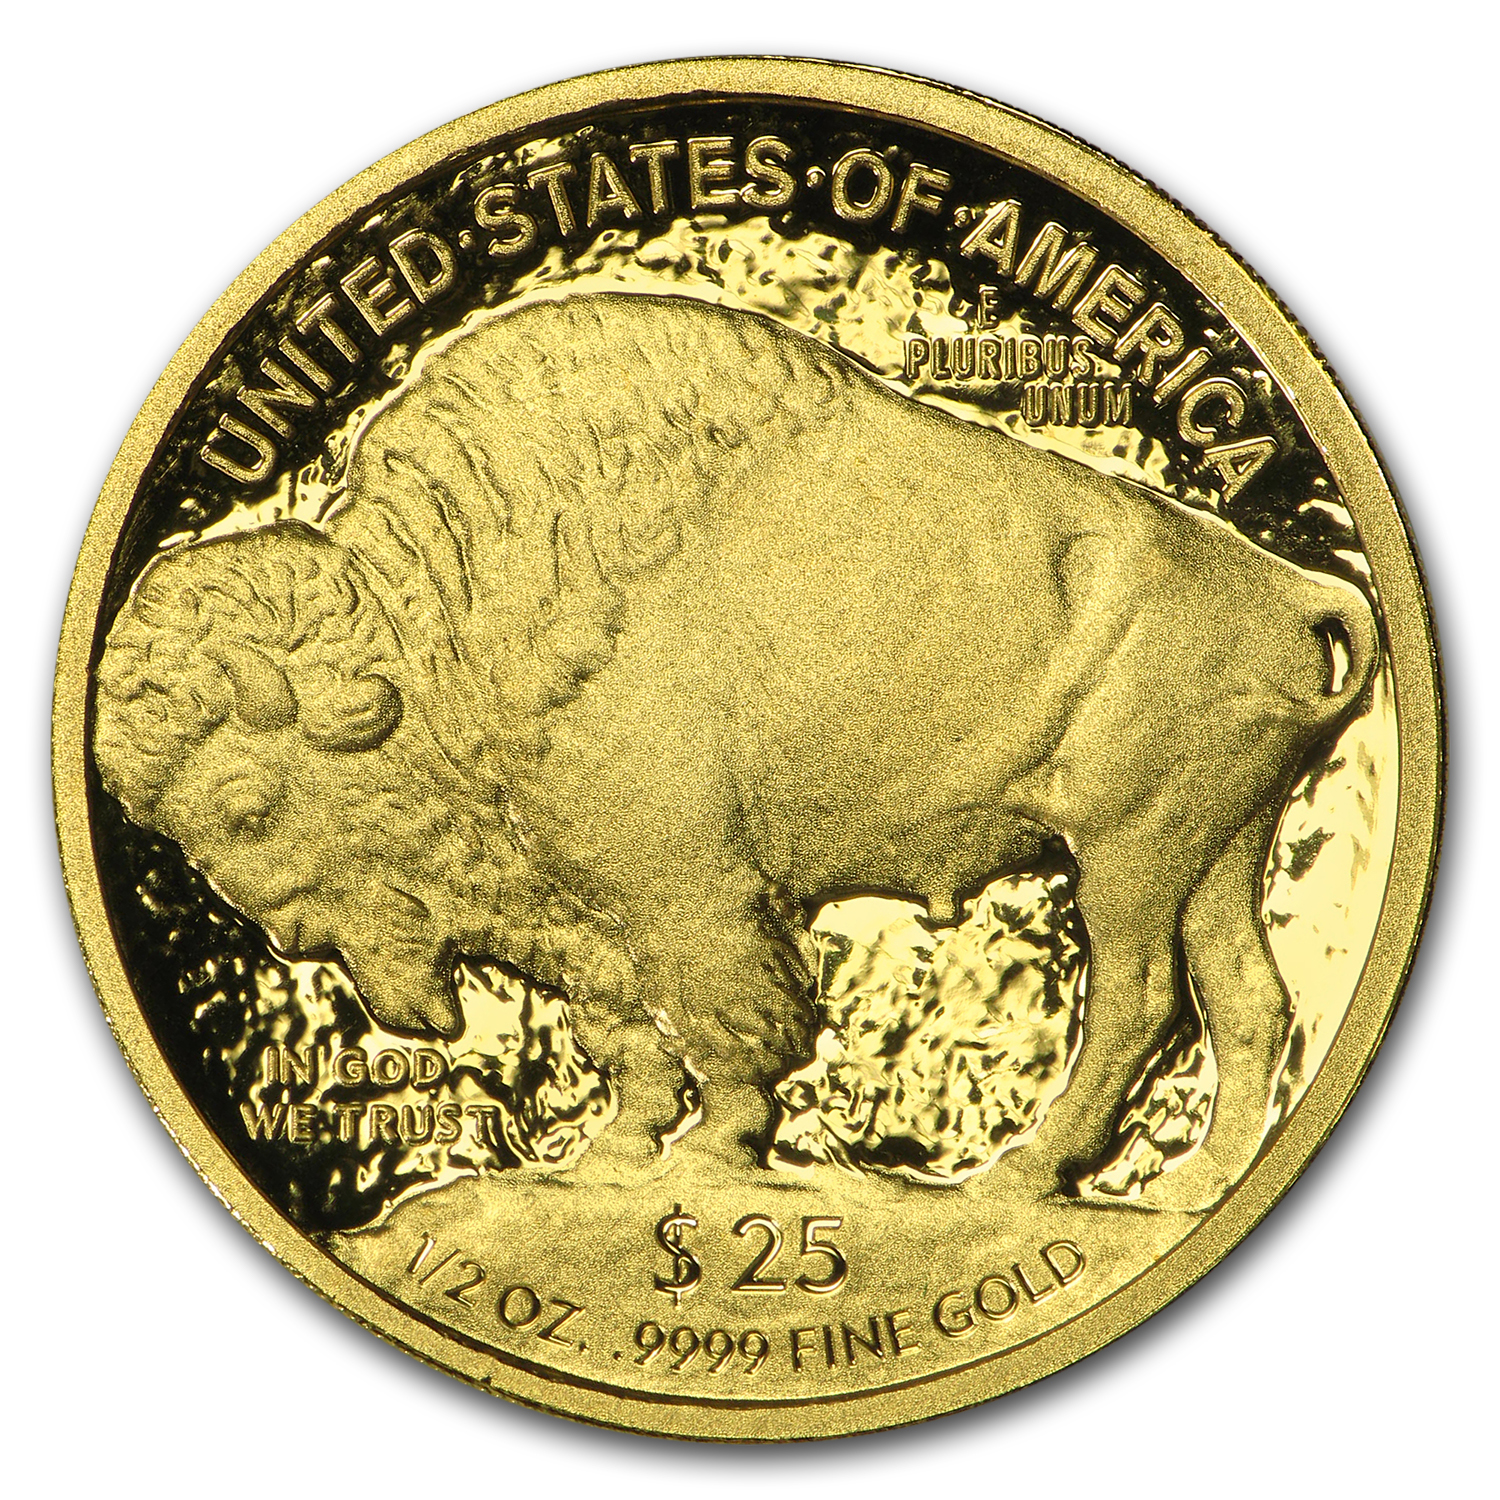 2008-W 1/2 oz Proof Gold Buffalo (w/Box & COA)